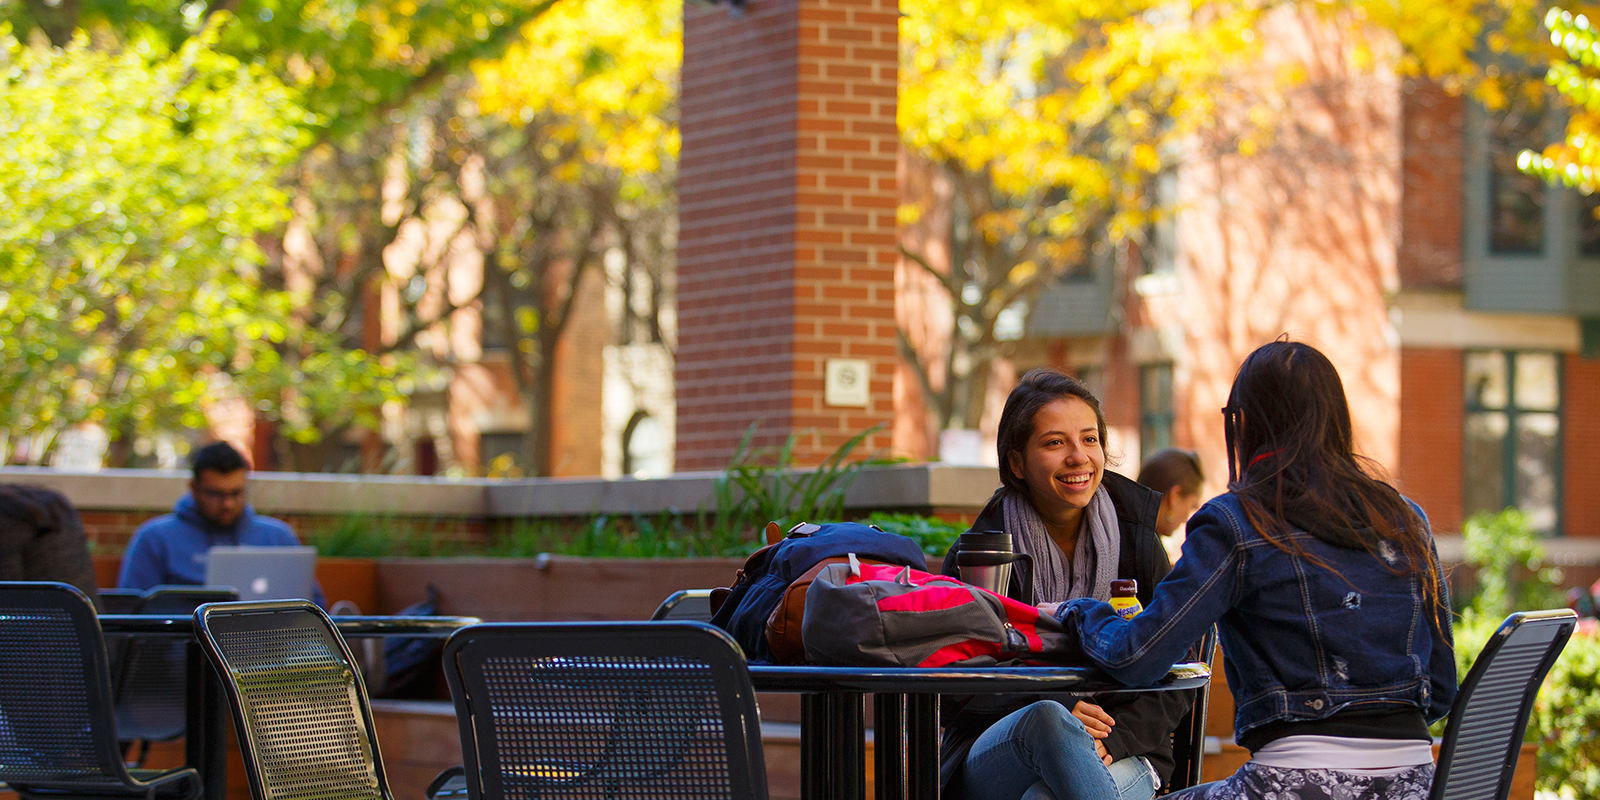 Students in the Quad